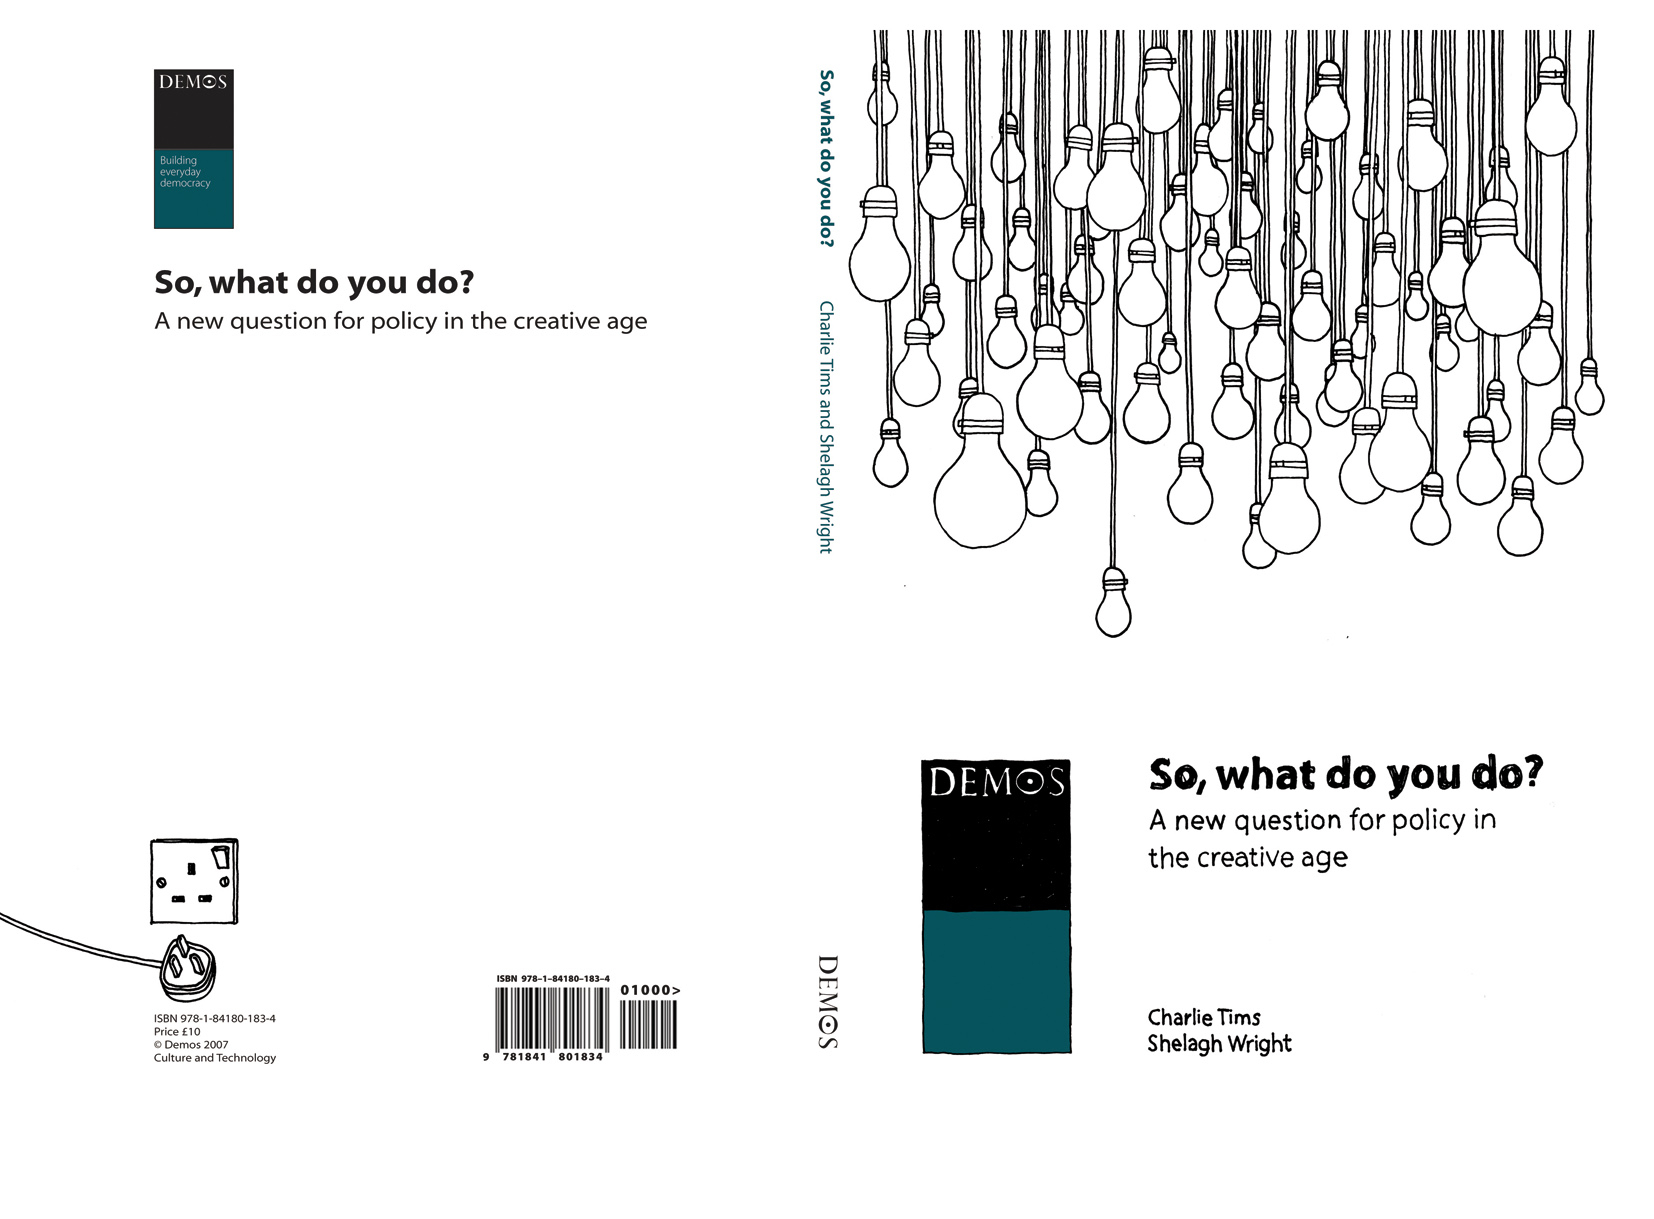 So, What Do You Do? Demos Report Cover